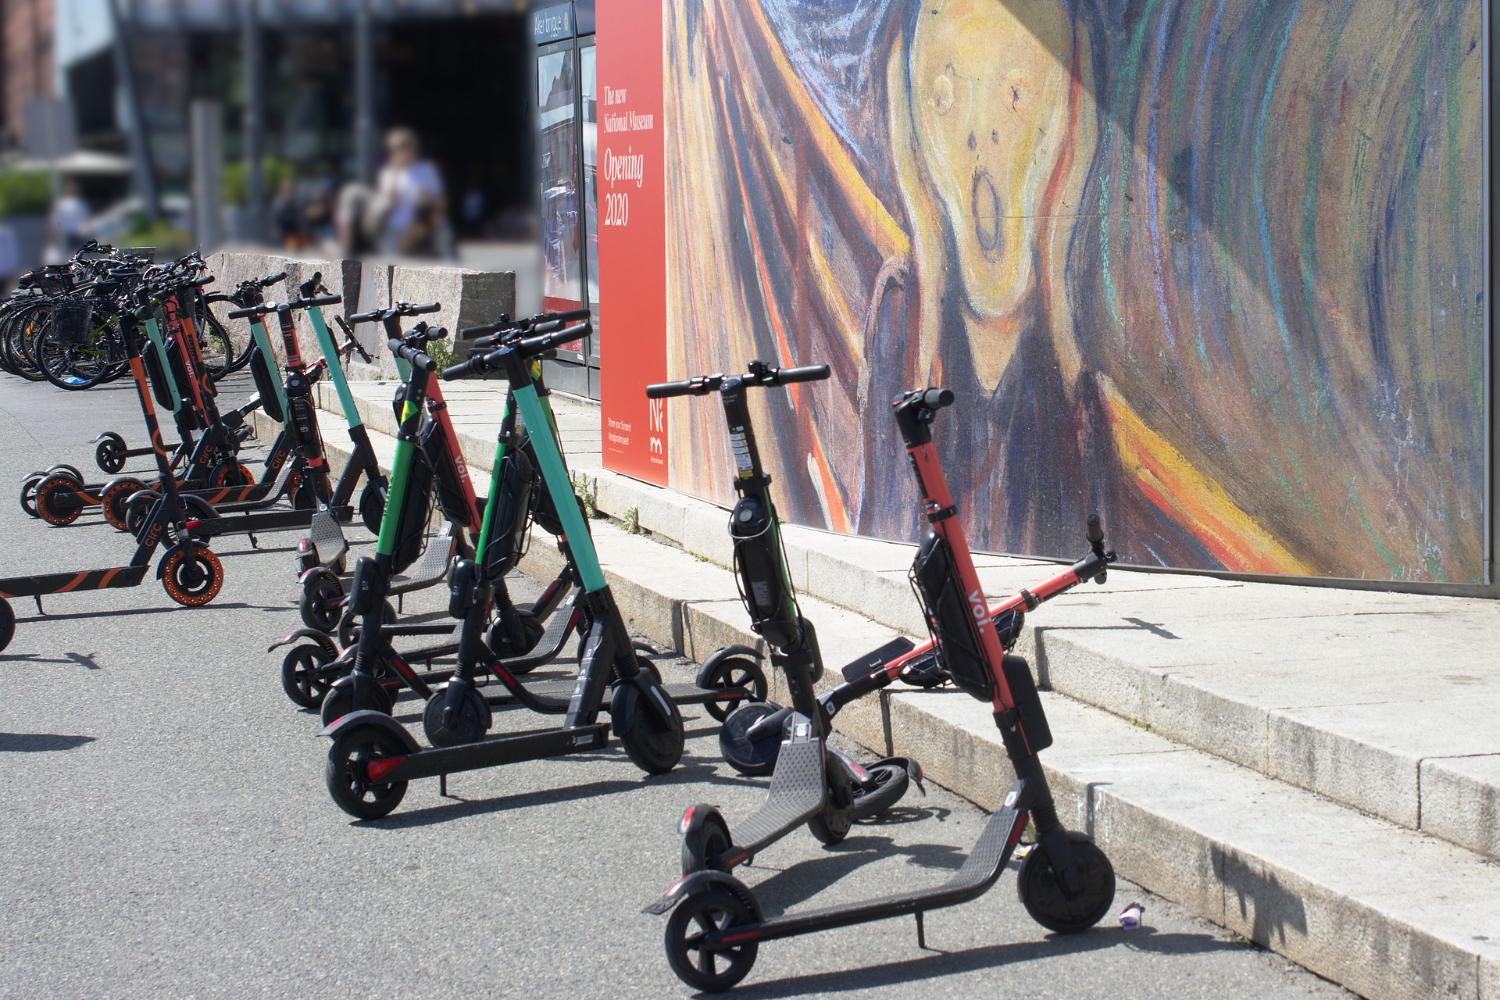 group of electric scooters